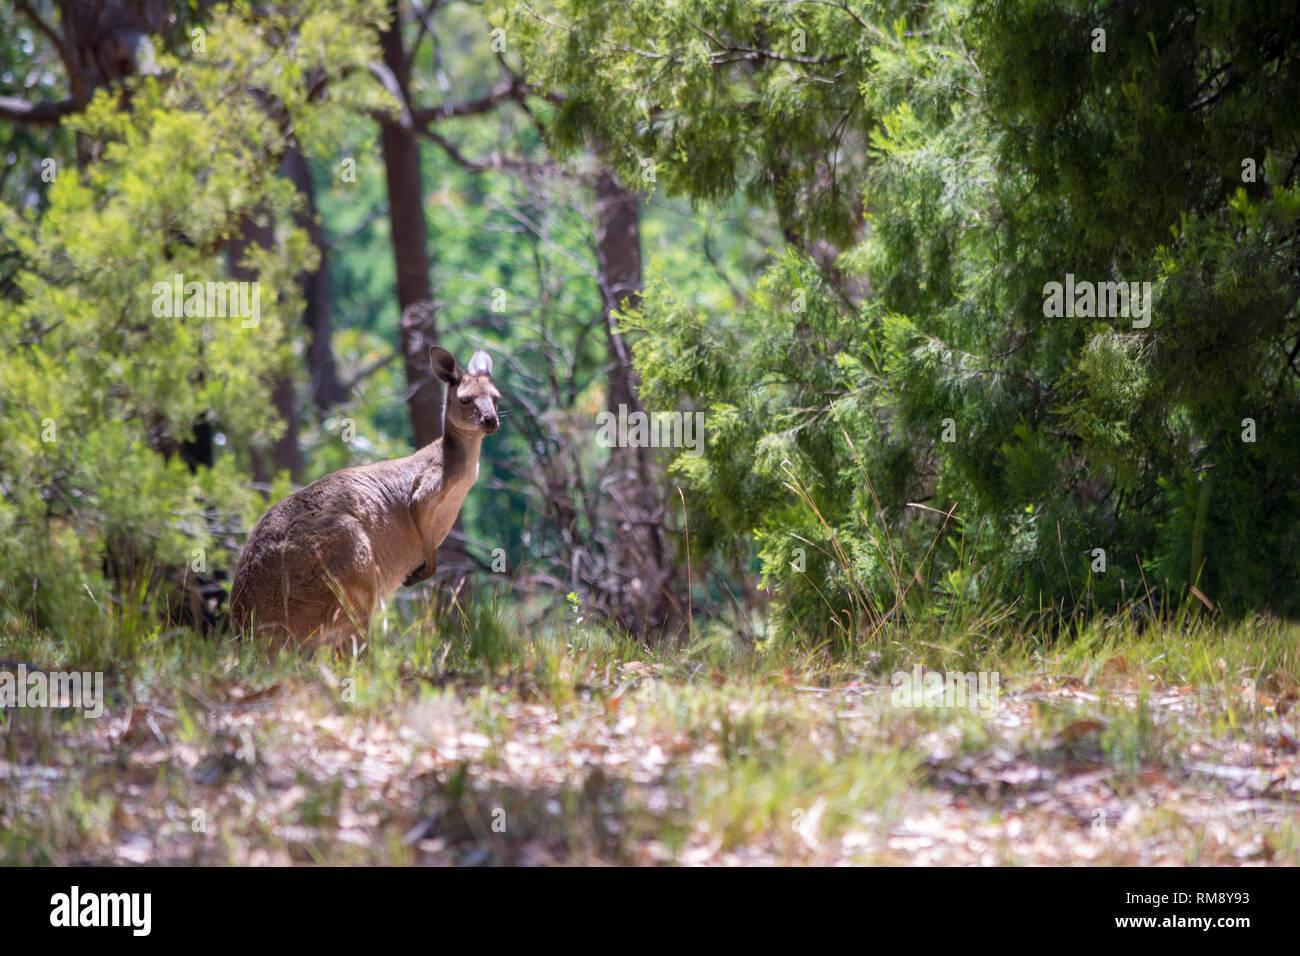 Wild kangaroo in the scrub land situated on the Mount Lofty in the Adelaide Hills, South Australia. - Stock Image